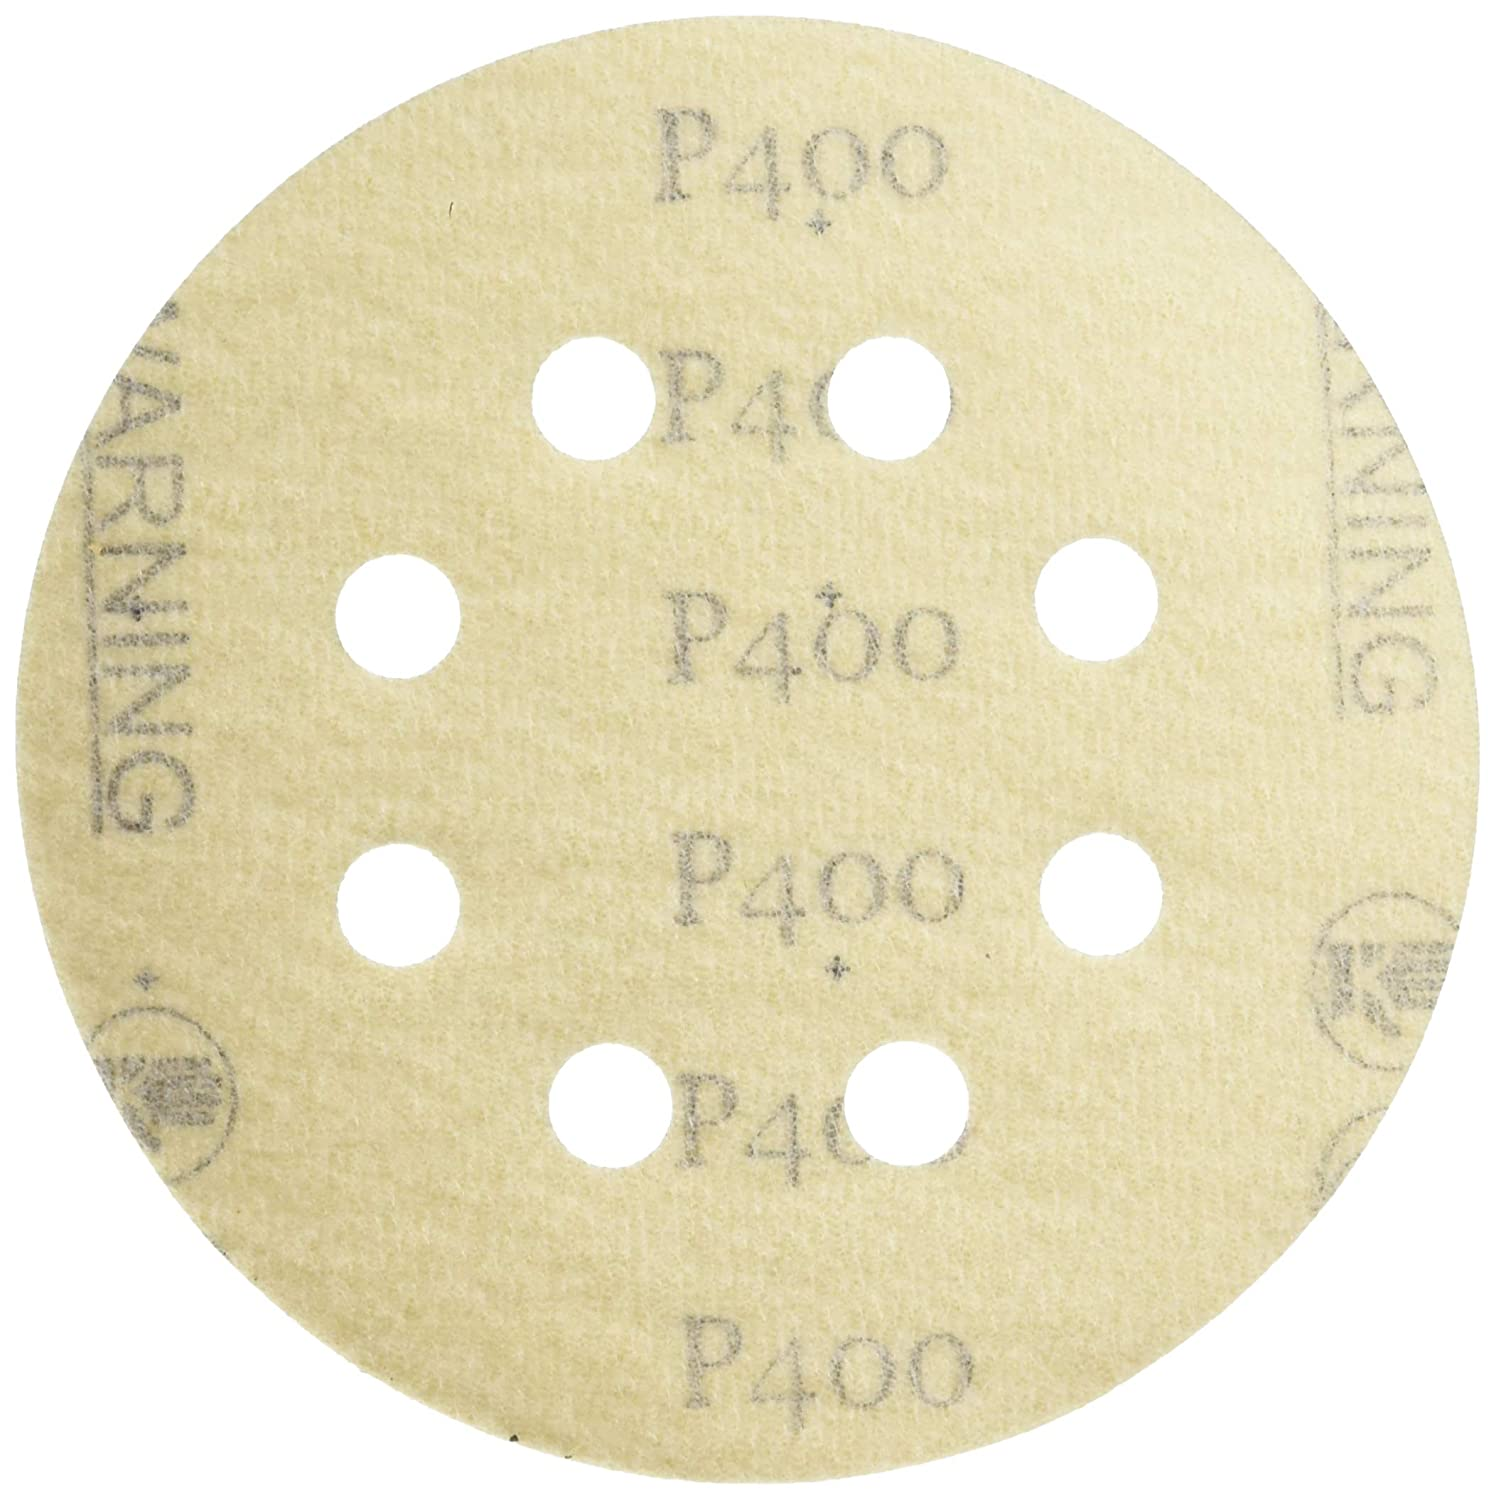 // Uxcell a13032900ux0169 Uxcell 10cm Dia 5mm Thick 500 Grit Marble Diamond Polishing Pad Dragonmarts Co Ltd